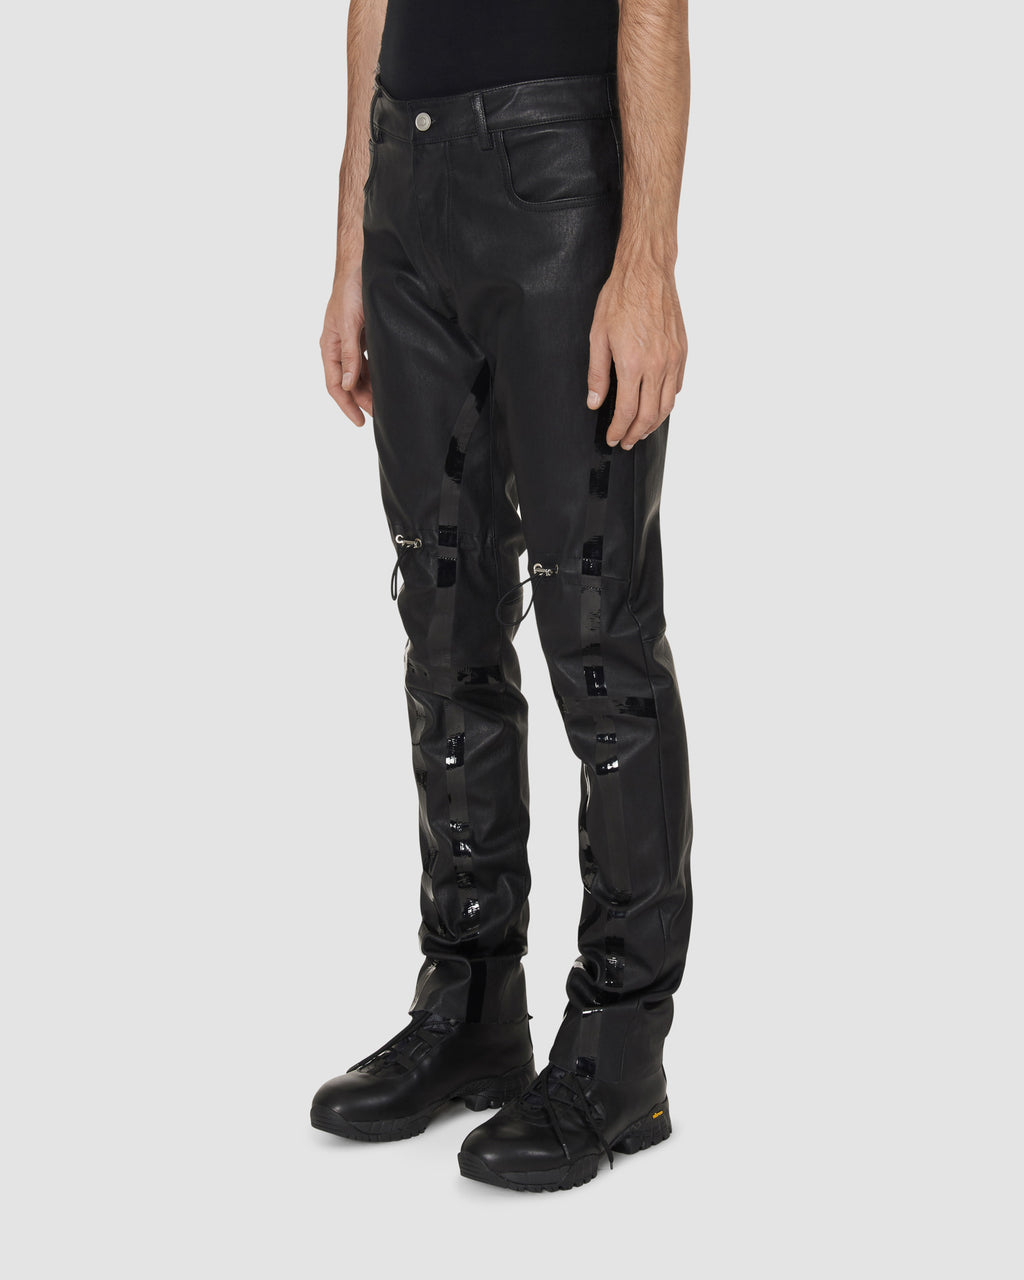 NORDSTROM LEATHER GAITER PANT